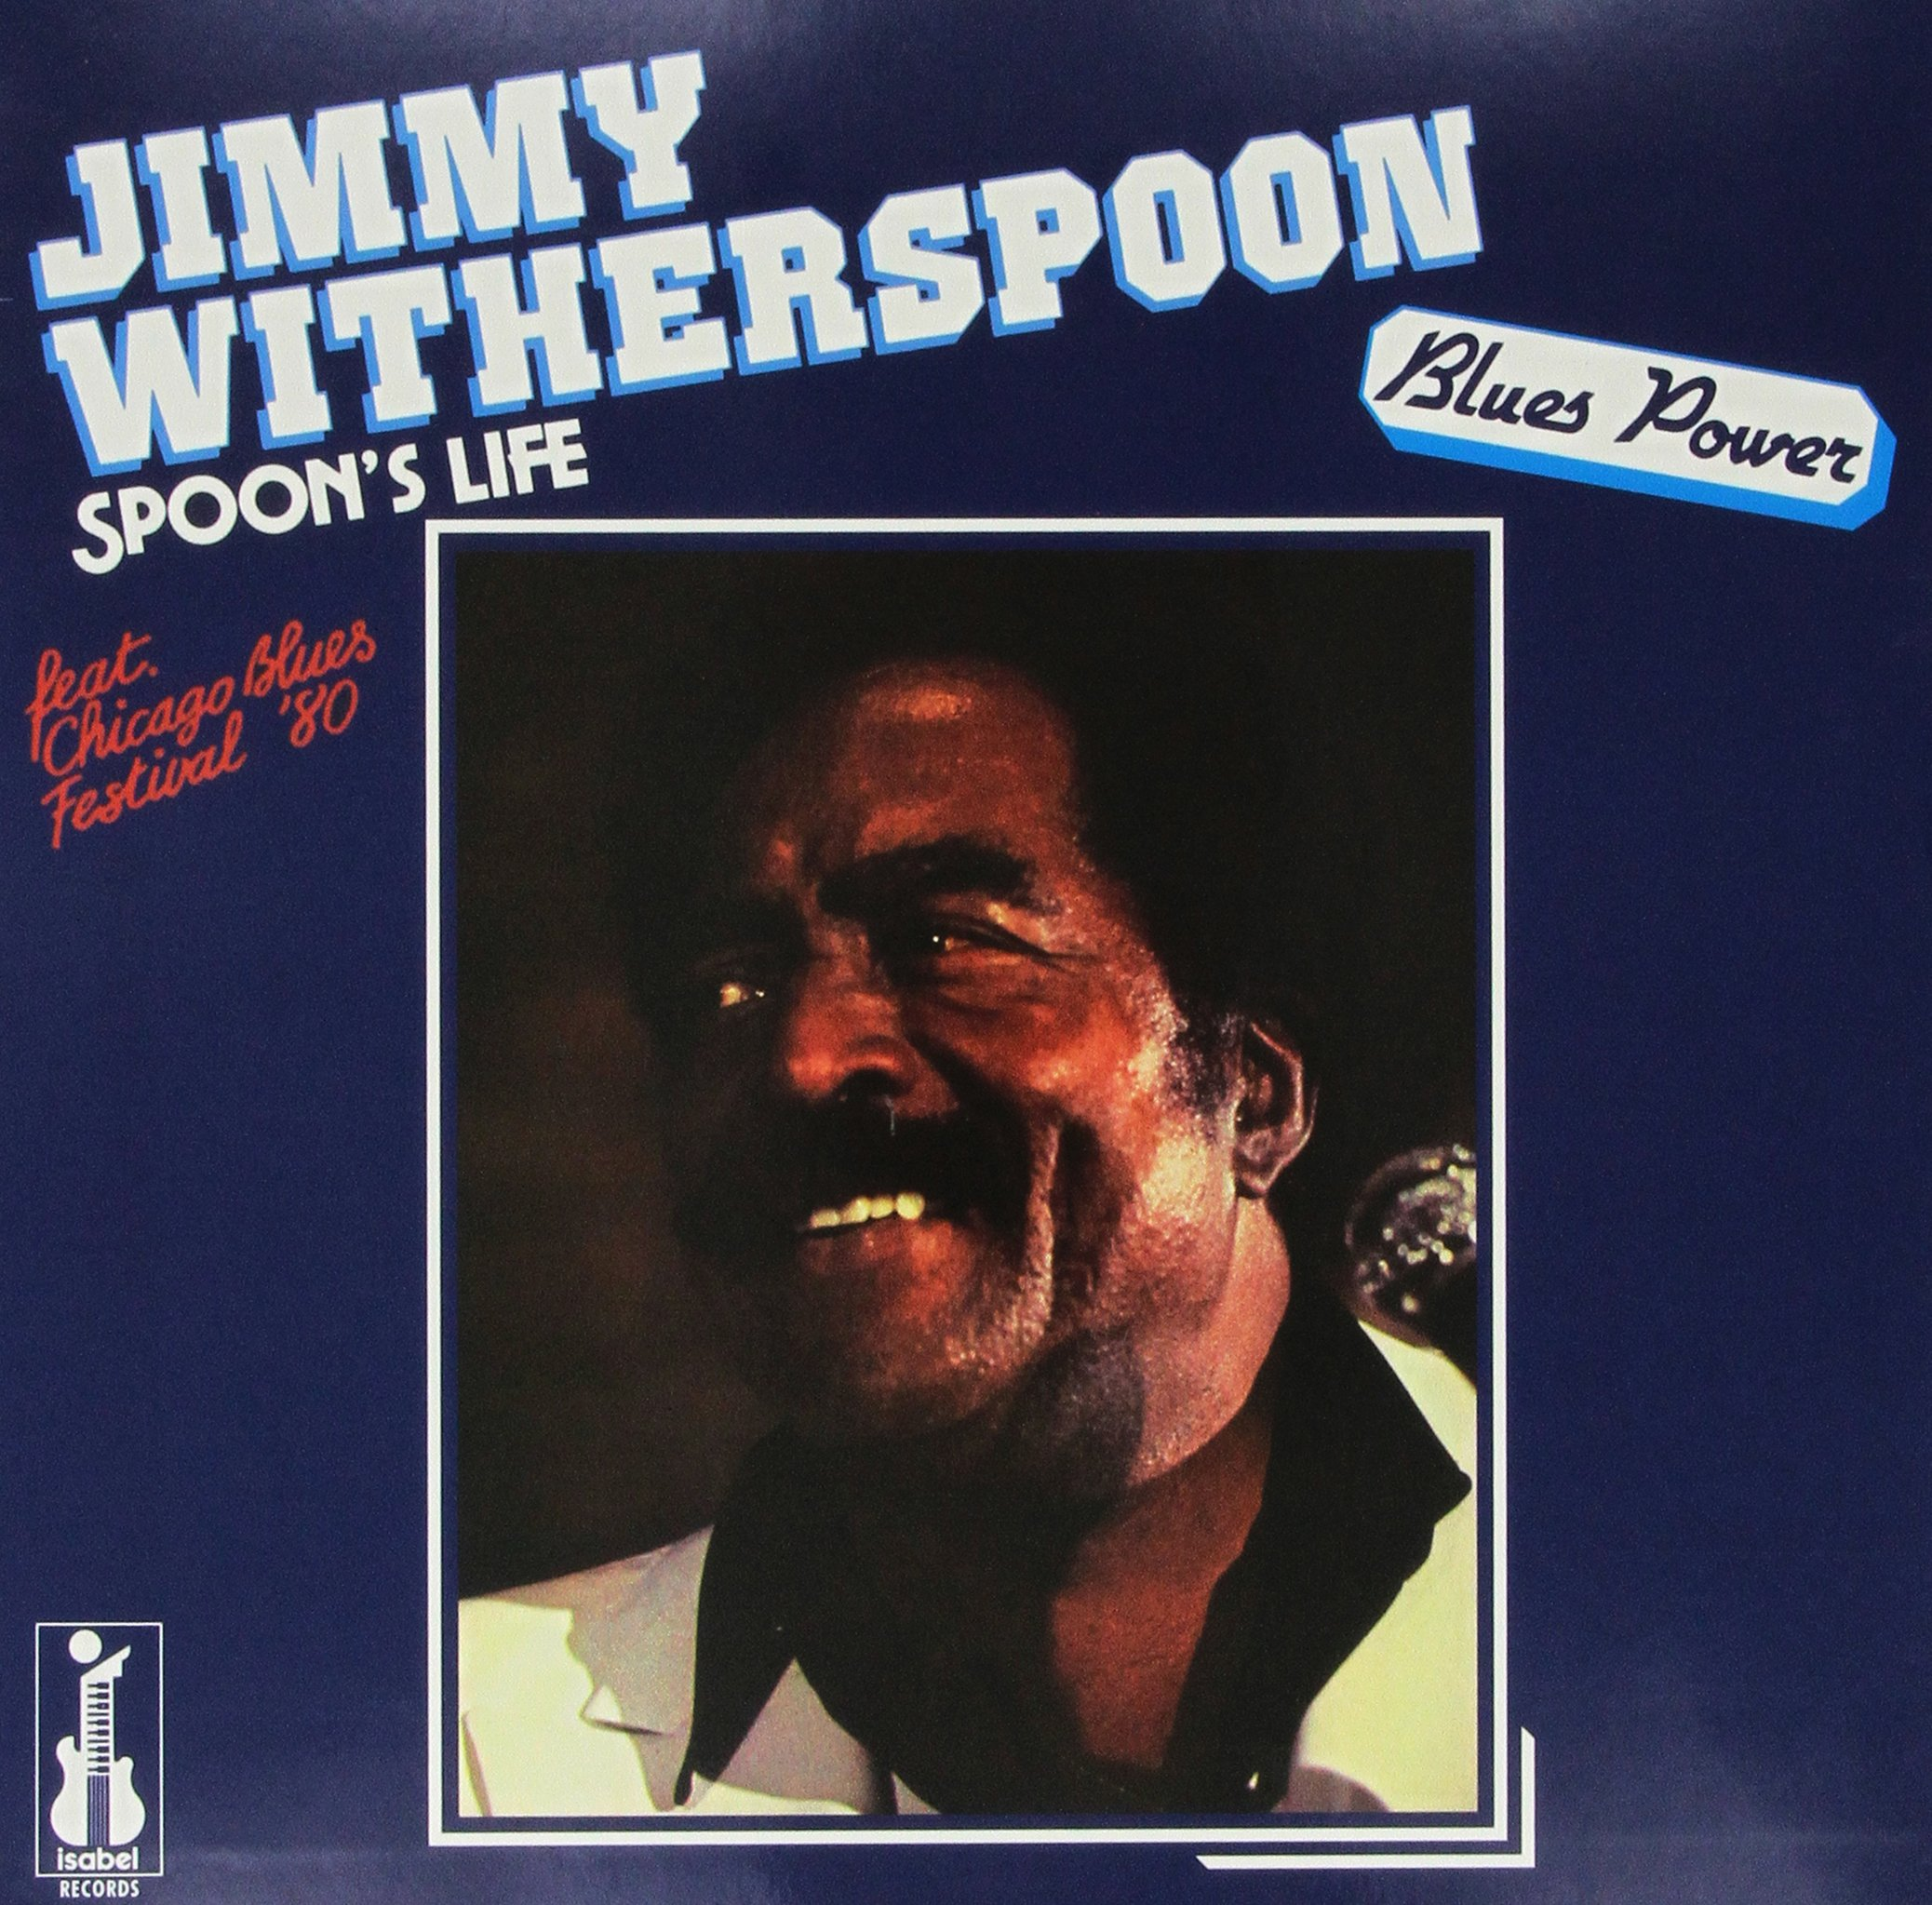 Vinilo : Jimmy Witherspoon - Spoon's Life (180 Gram Vinyl)